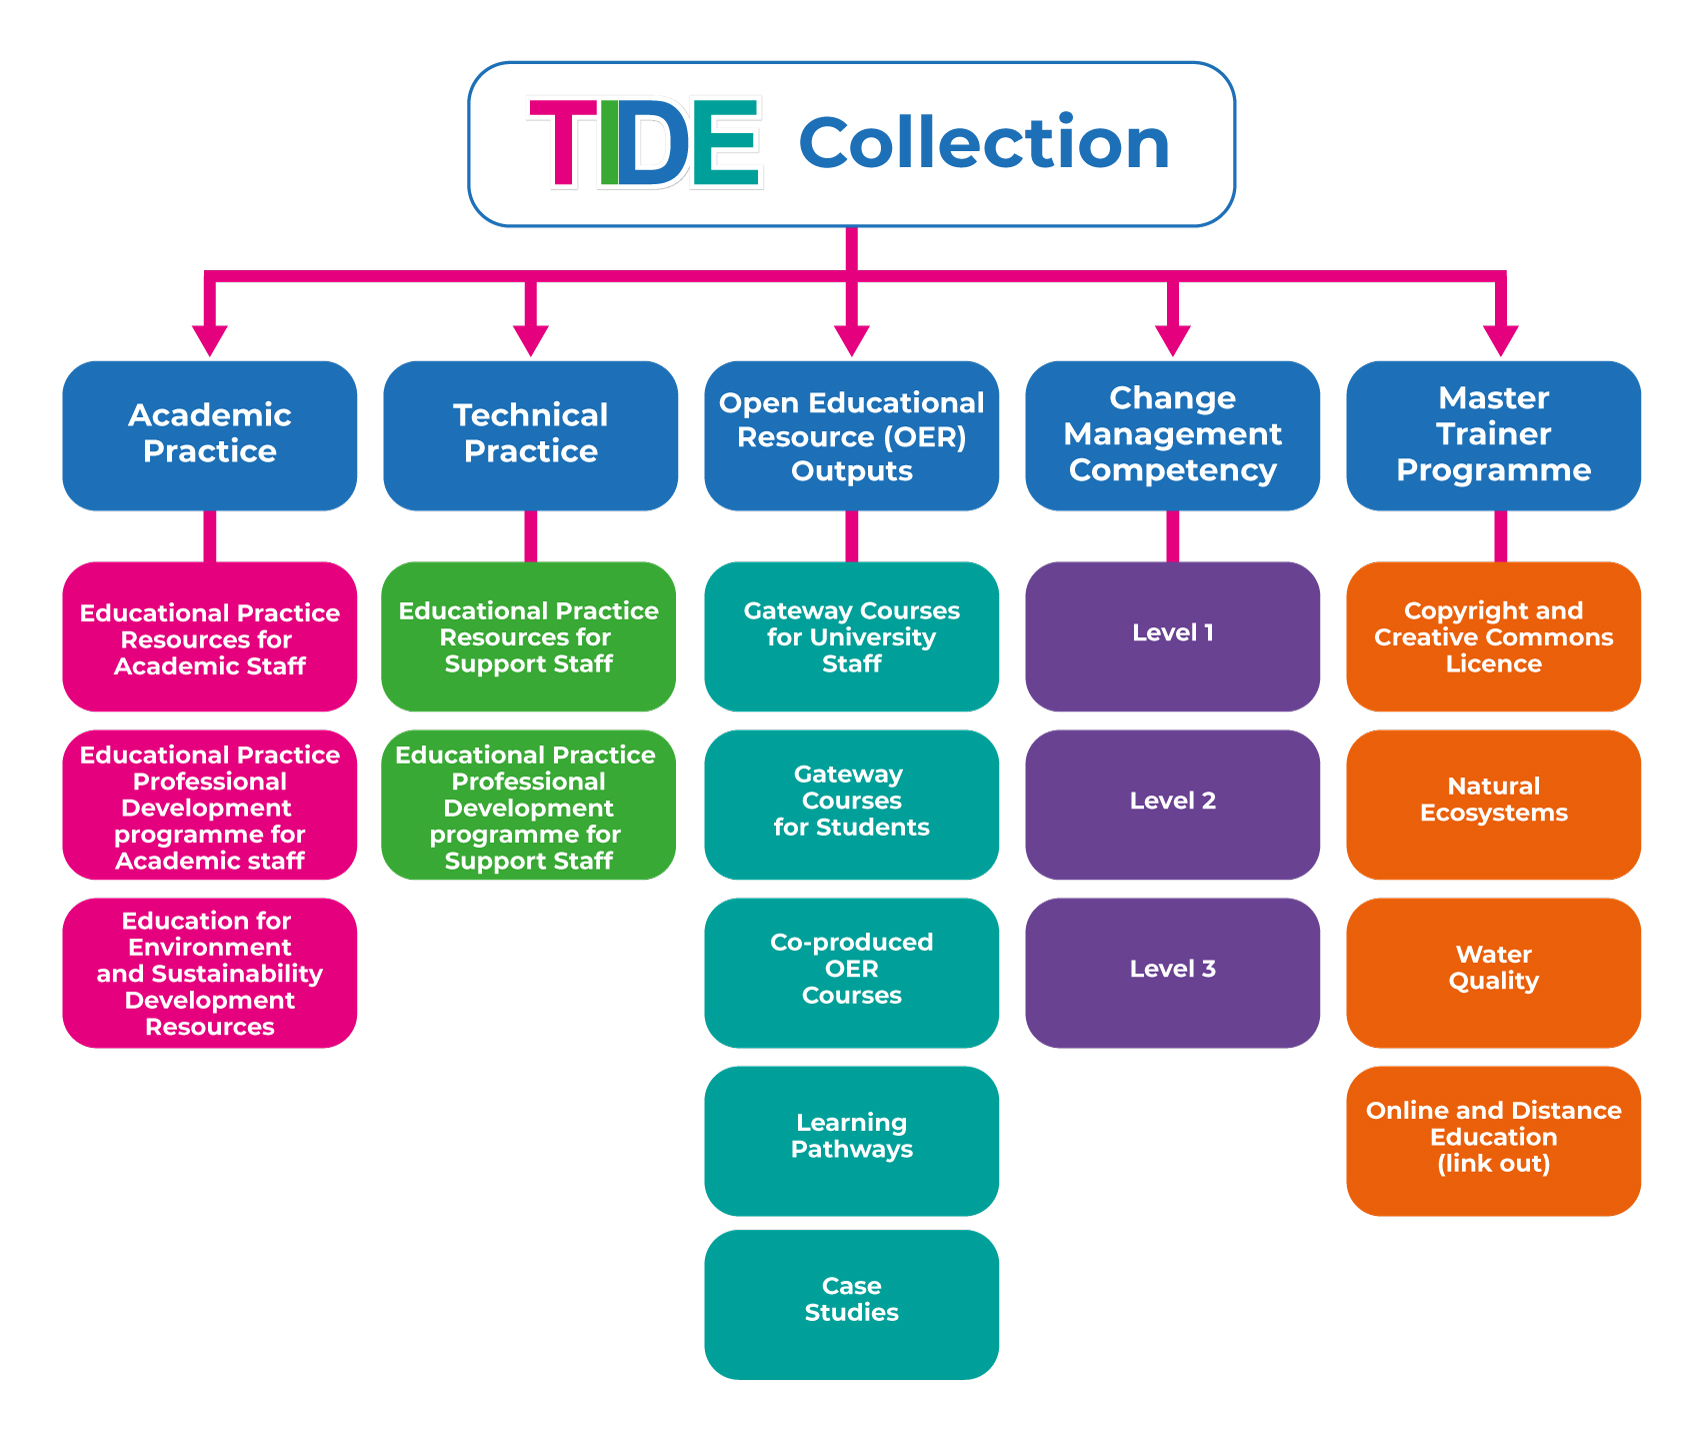 This image is a visual representation of the structure of the TIDE project webiste